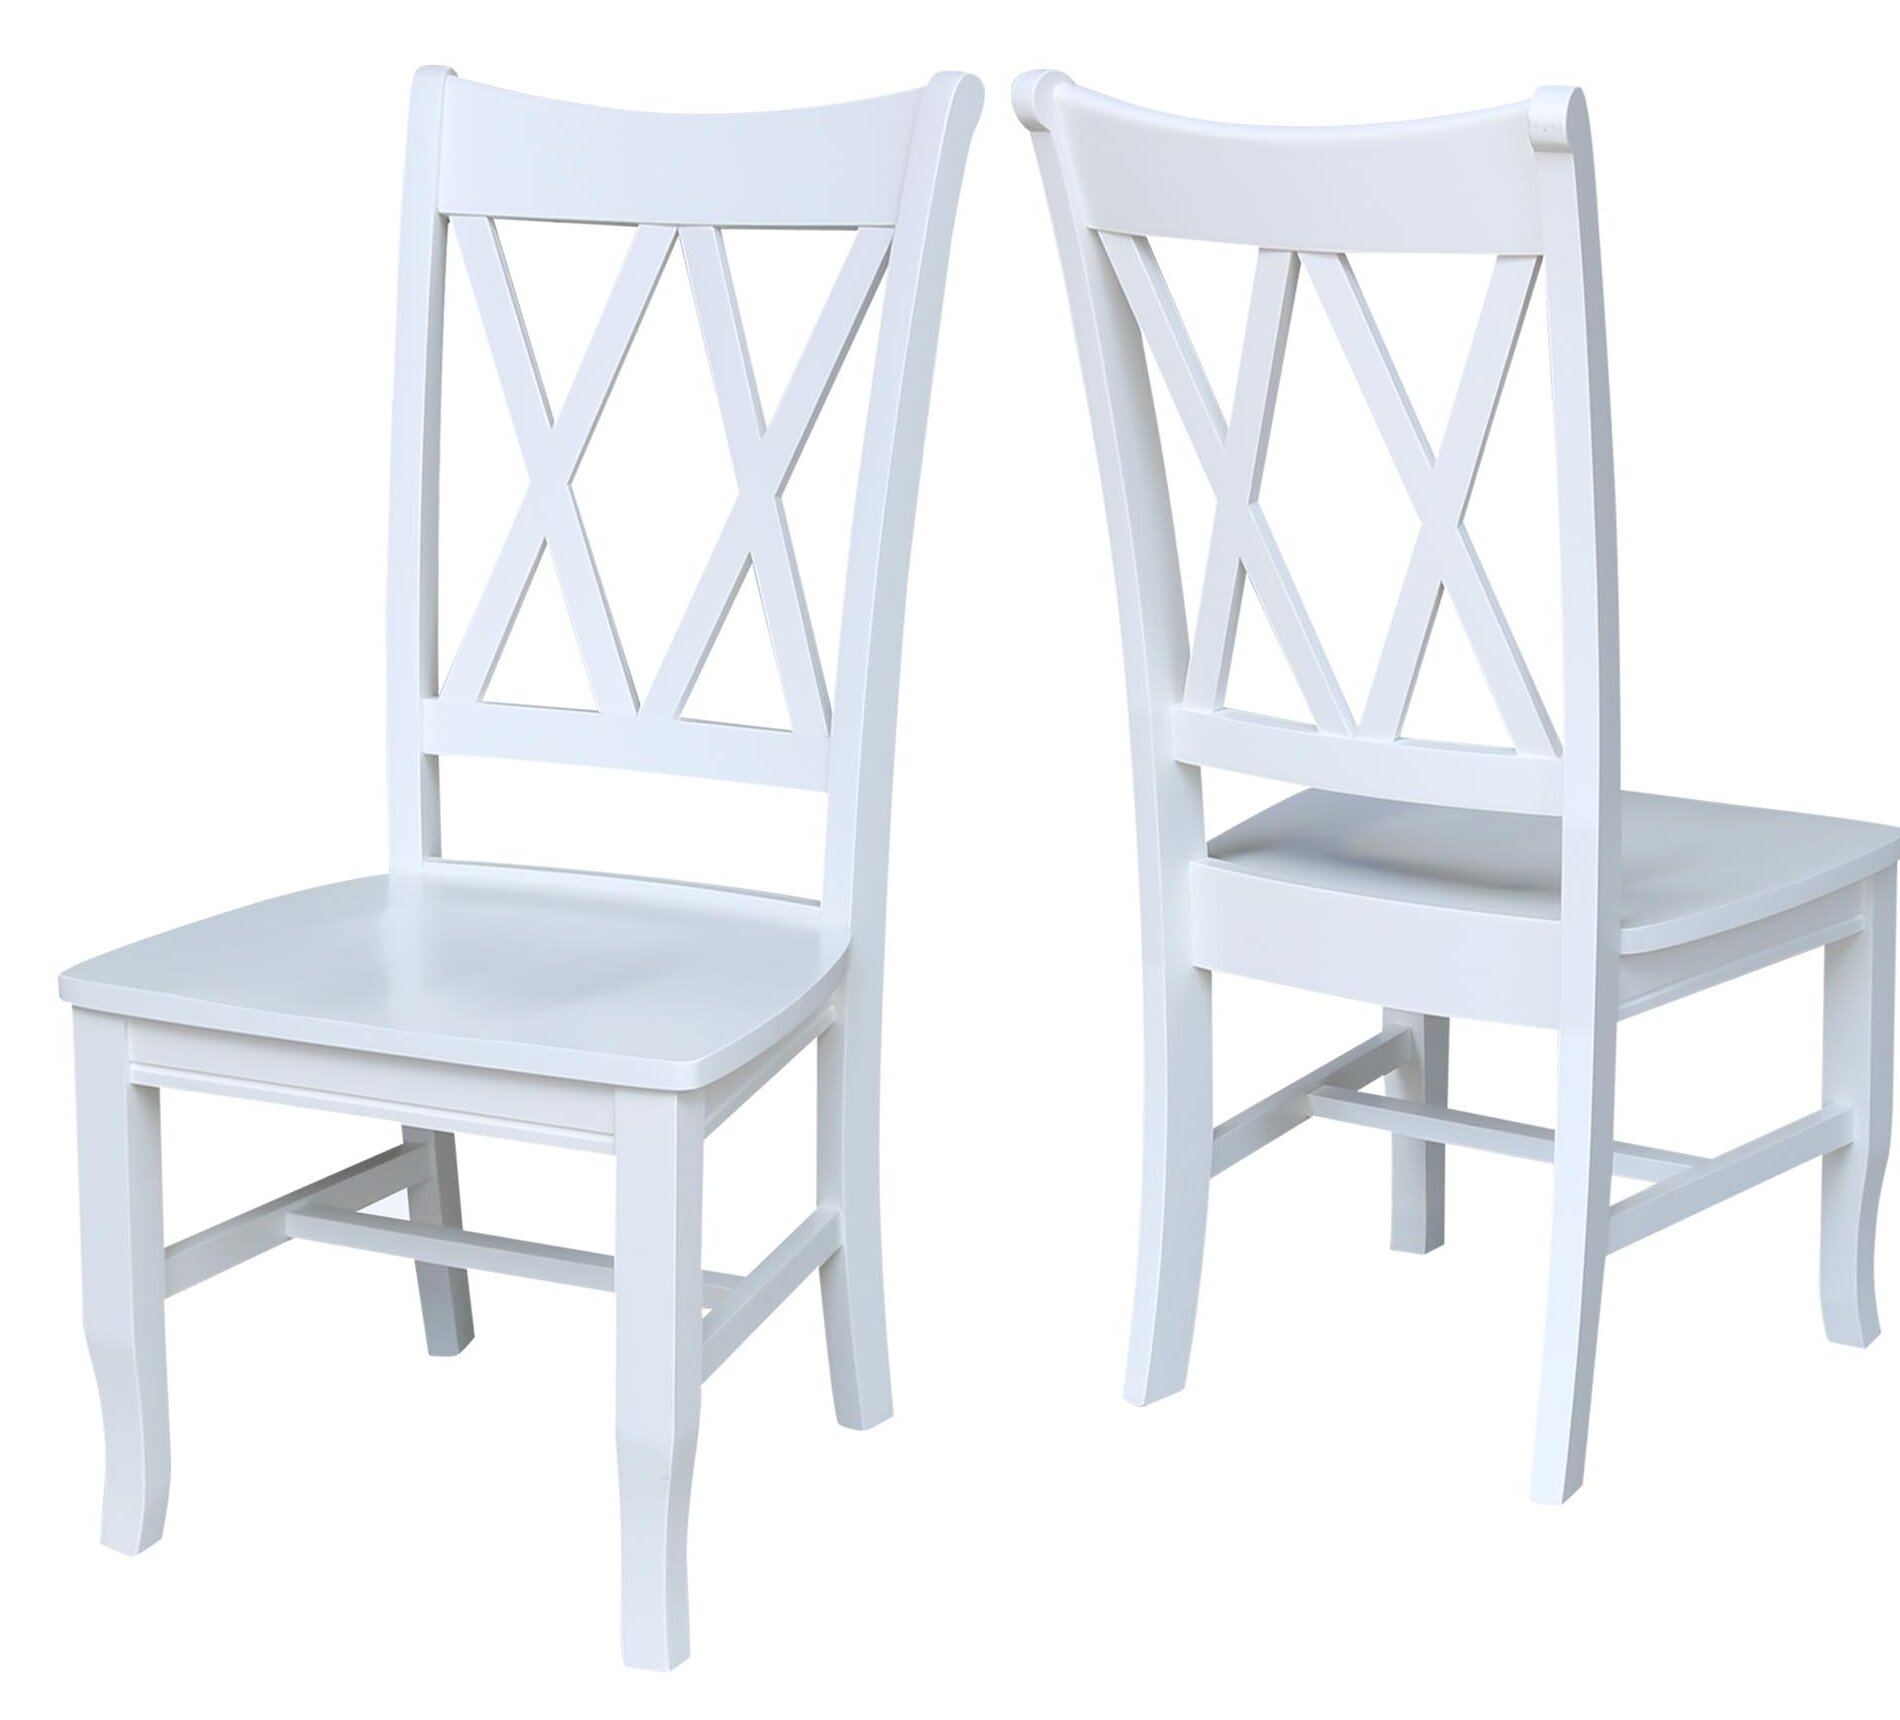 Swell White Double X Back Dining Chair Ibusinesslaw Wood Chair Design Ideas Ibusinesslaworg